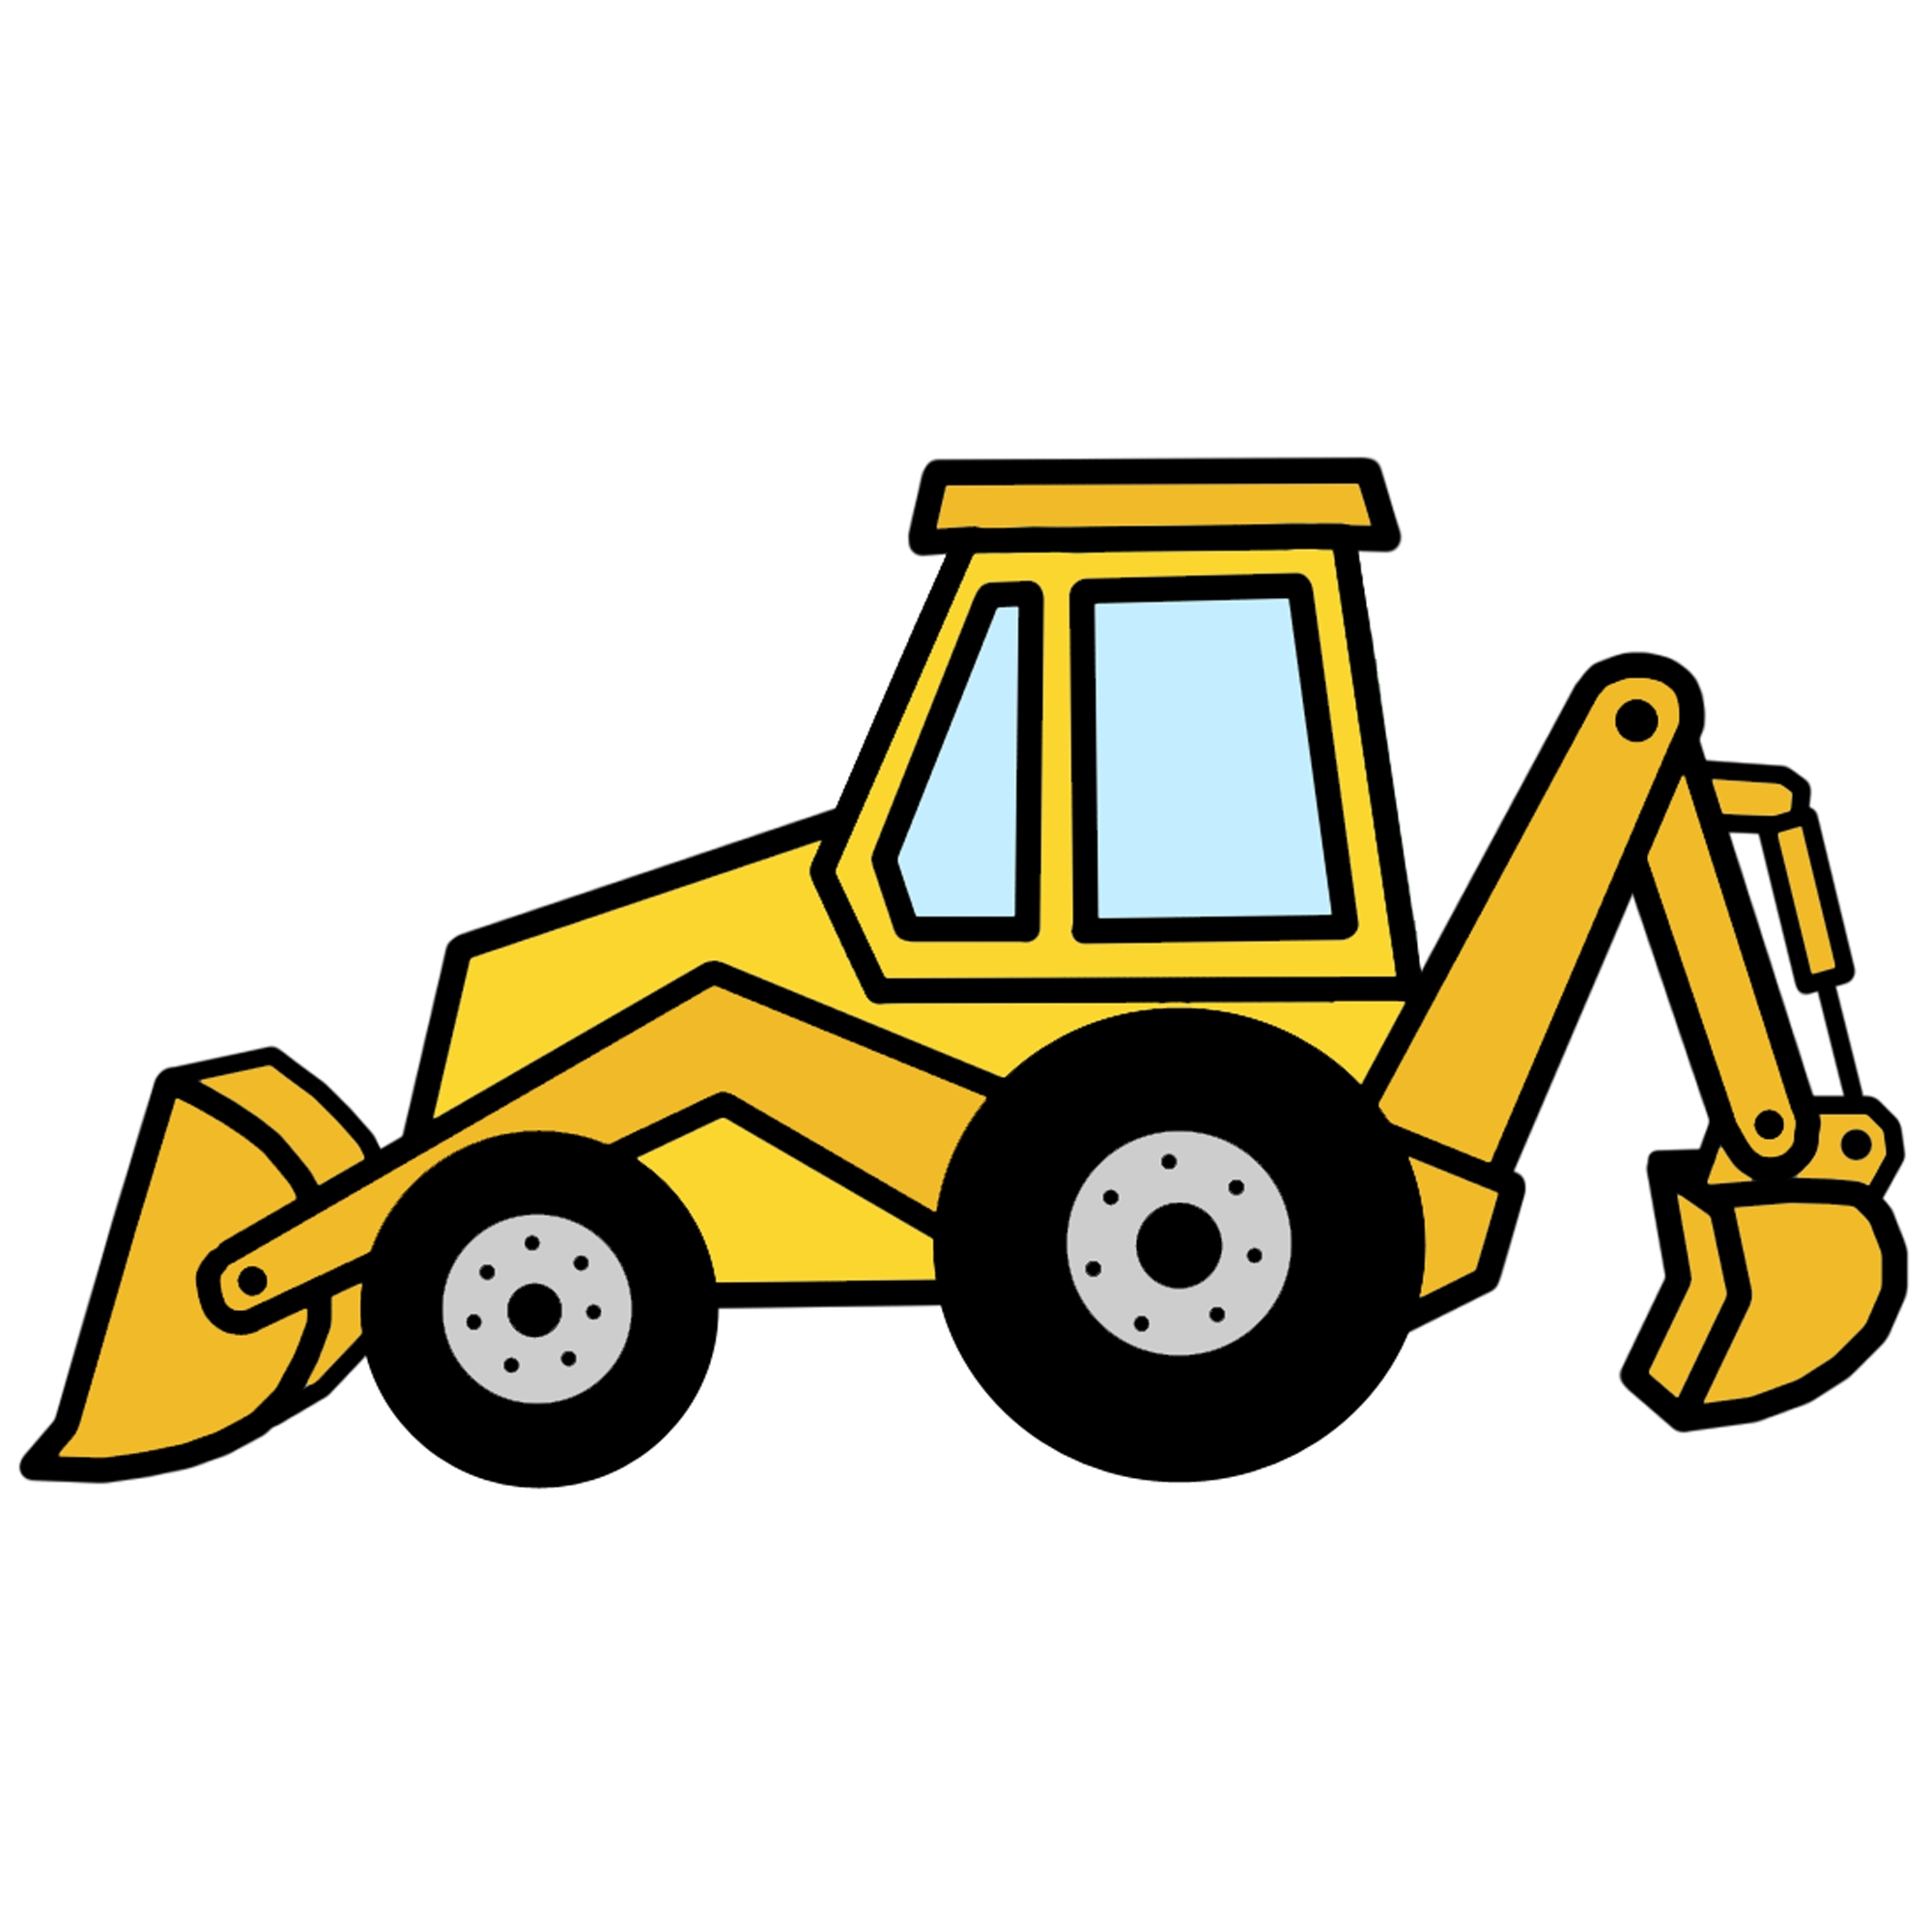 black and white download Backhoe transparent . Bulldozer clipart excavator